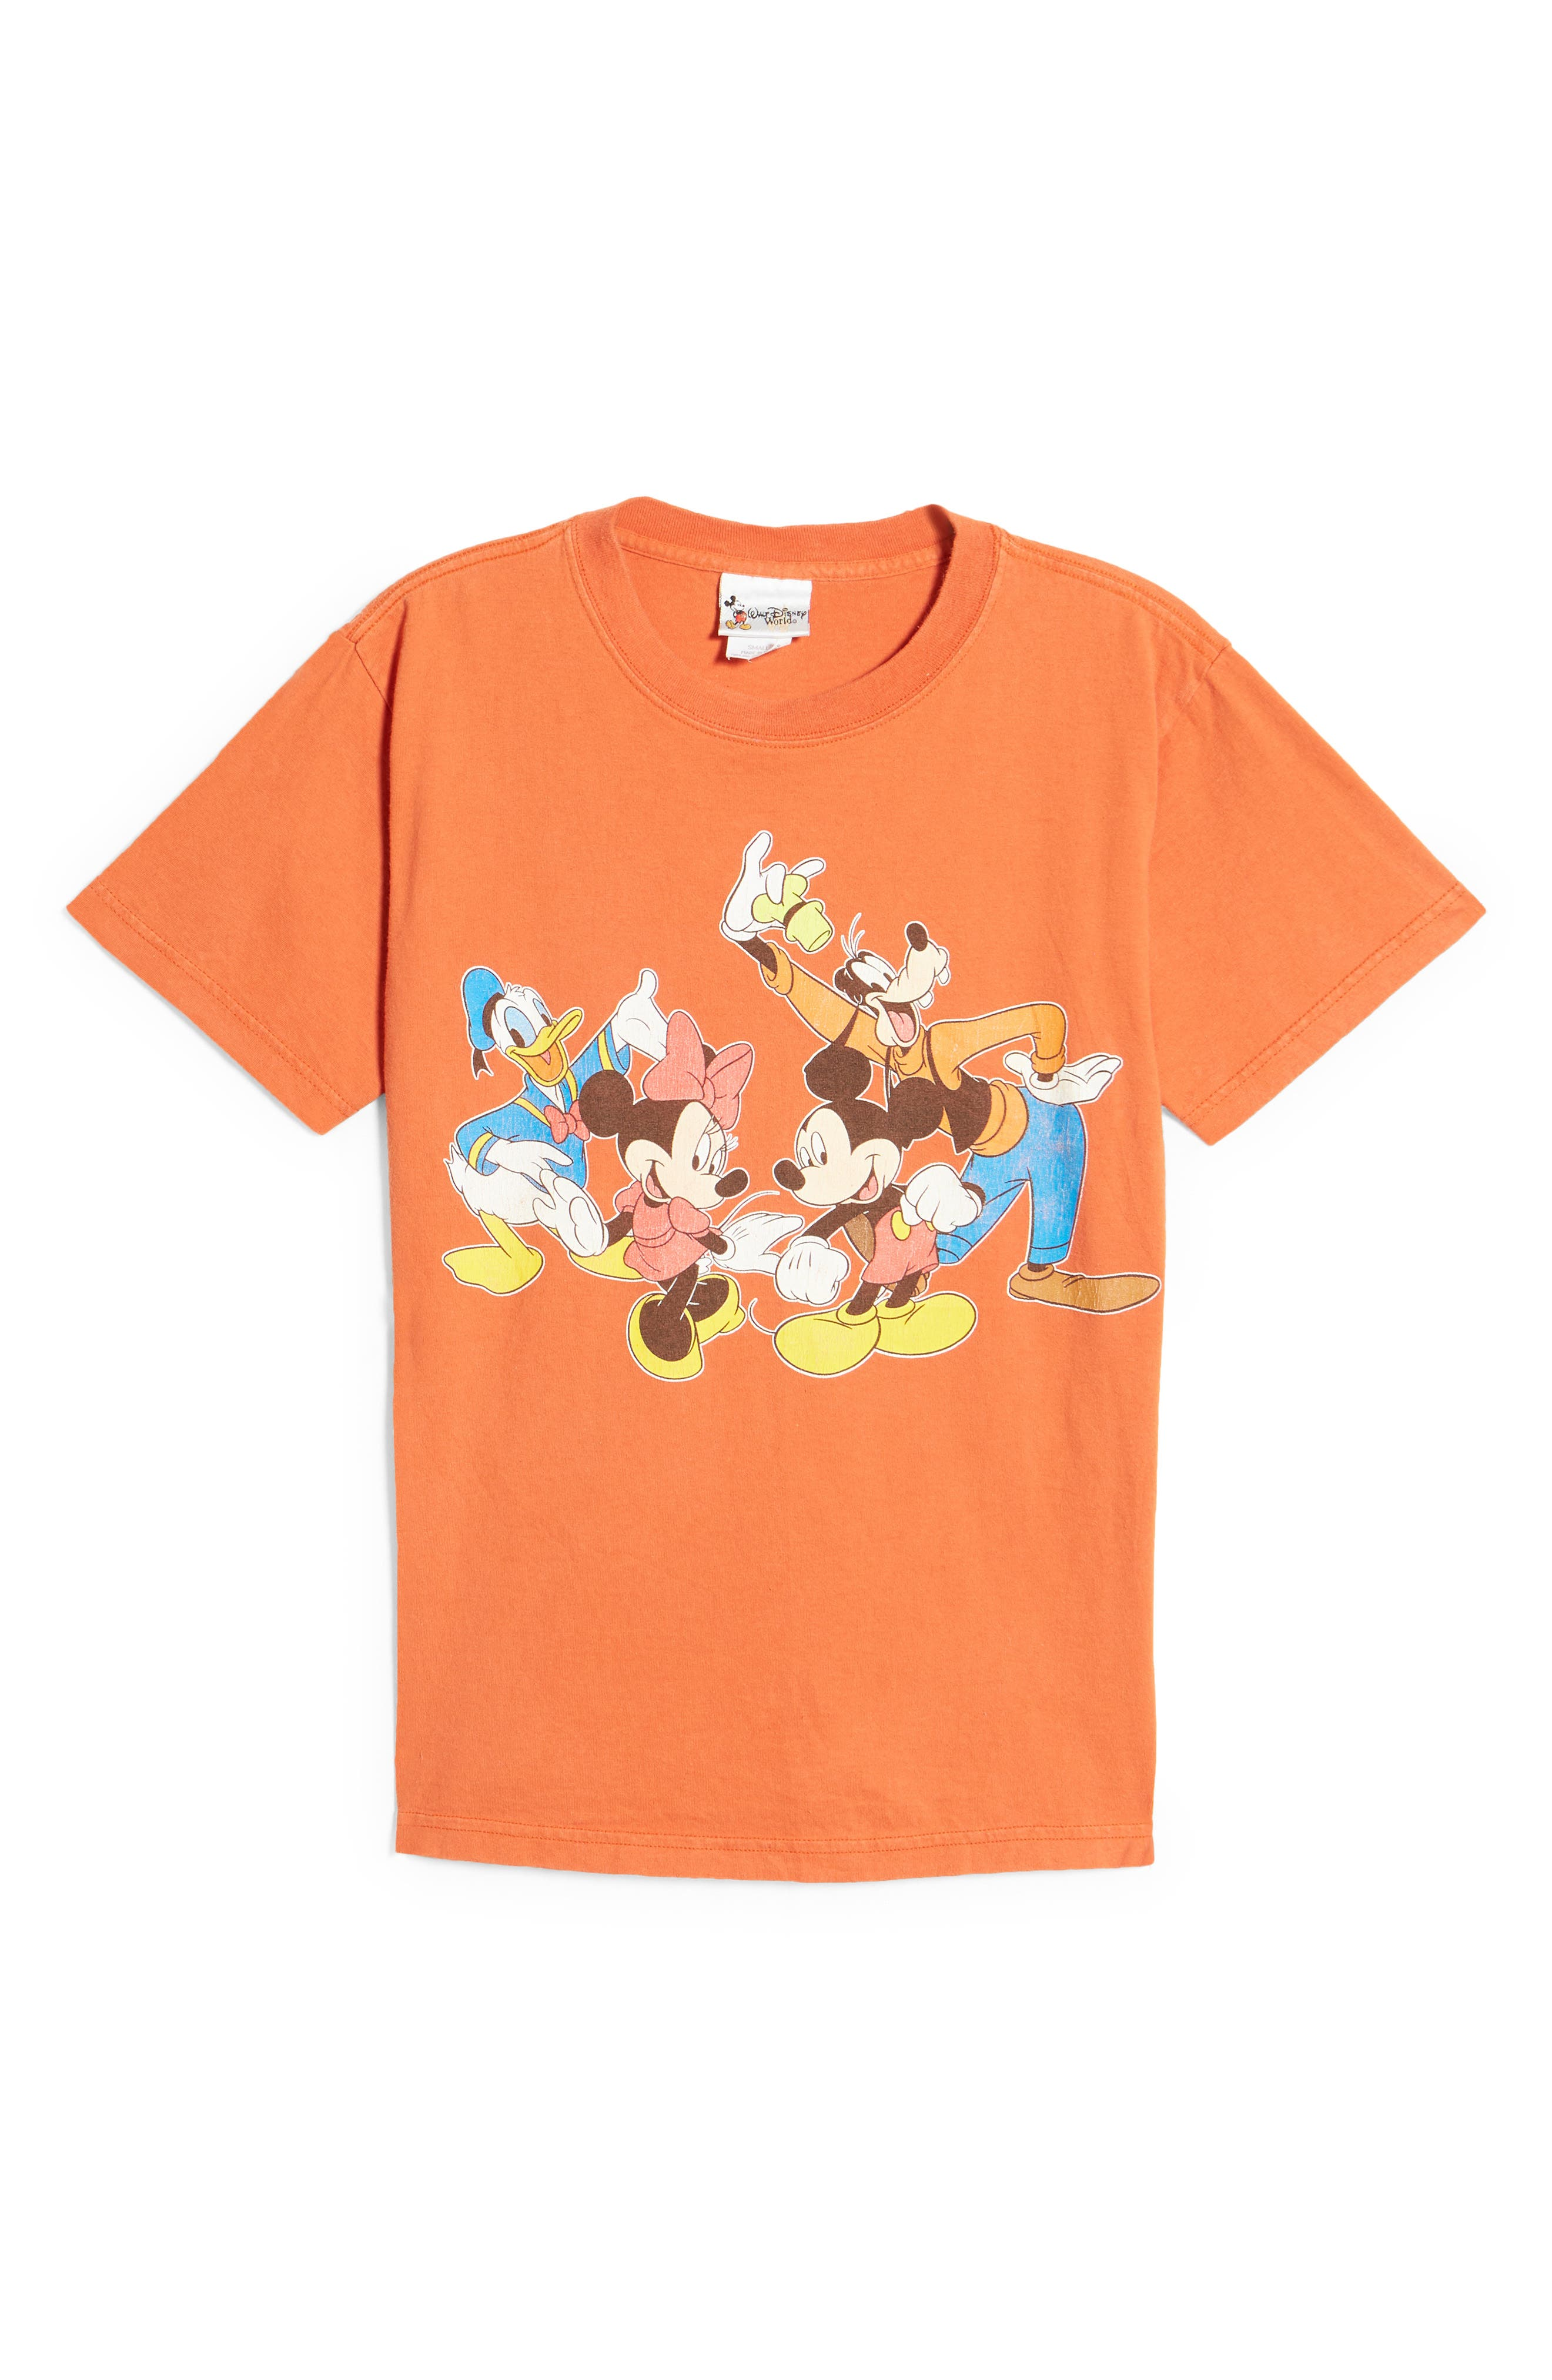 Unisex Secondhand Mickey & Friends Graphic Tee